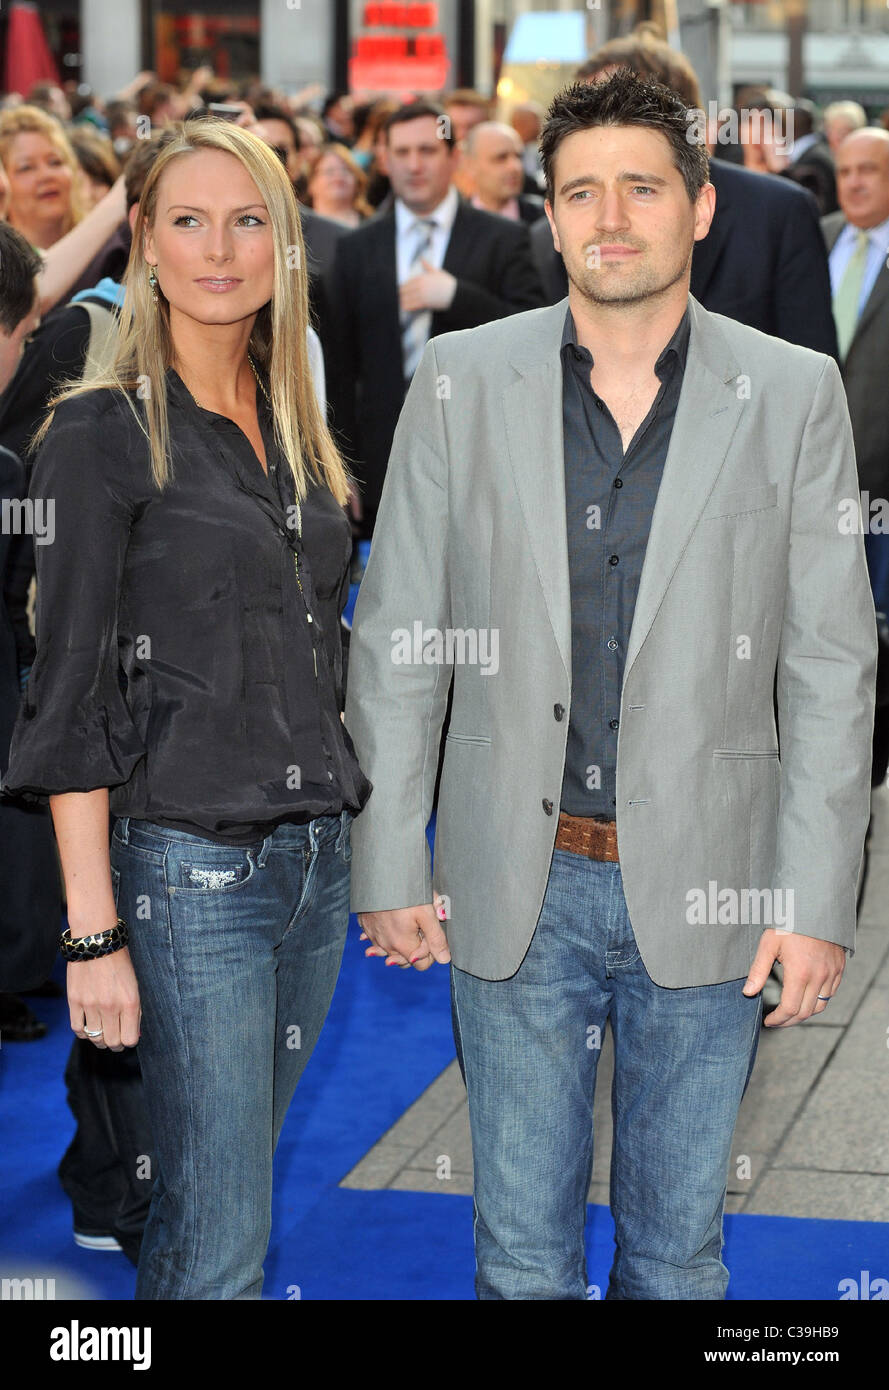 Tom Chambers and Clair Harding UK film premiere of Star Trek at